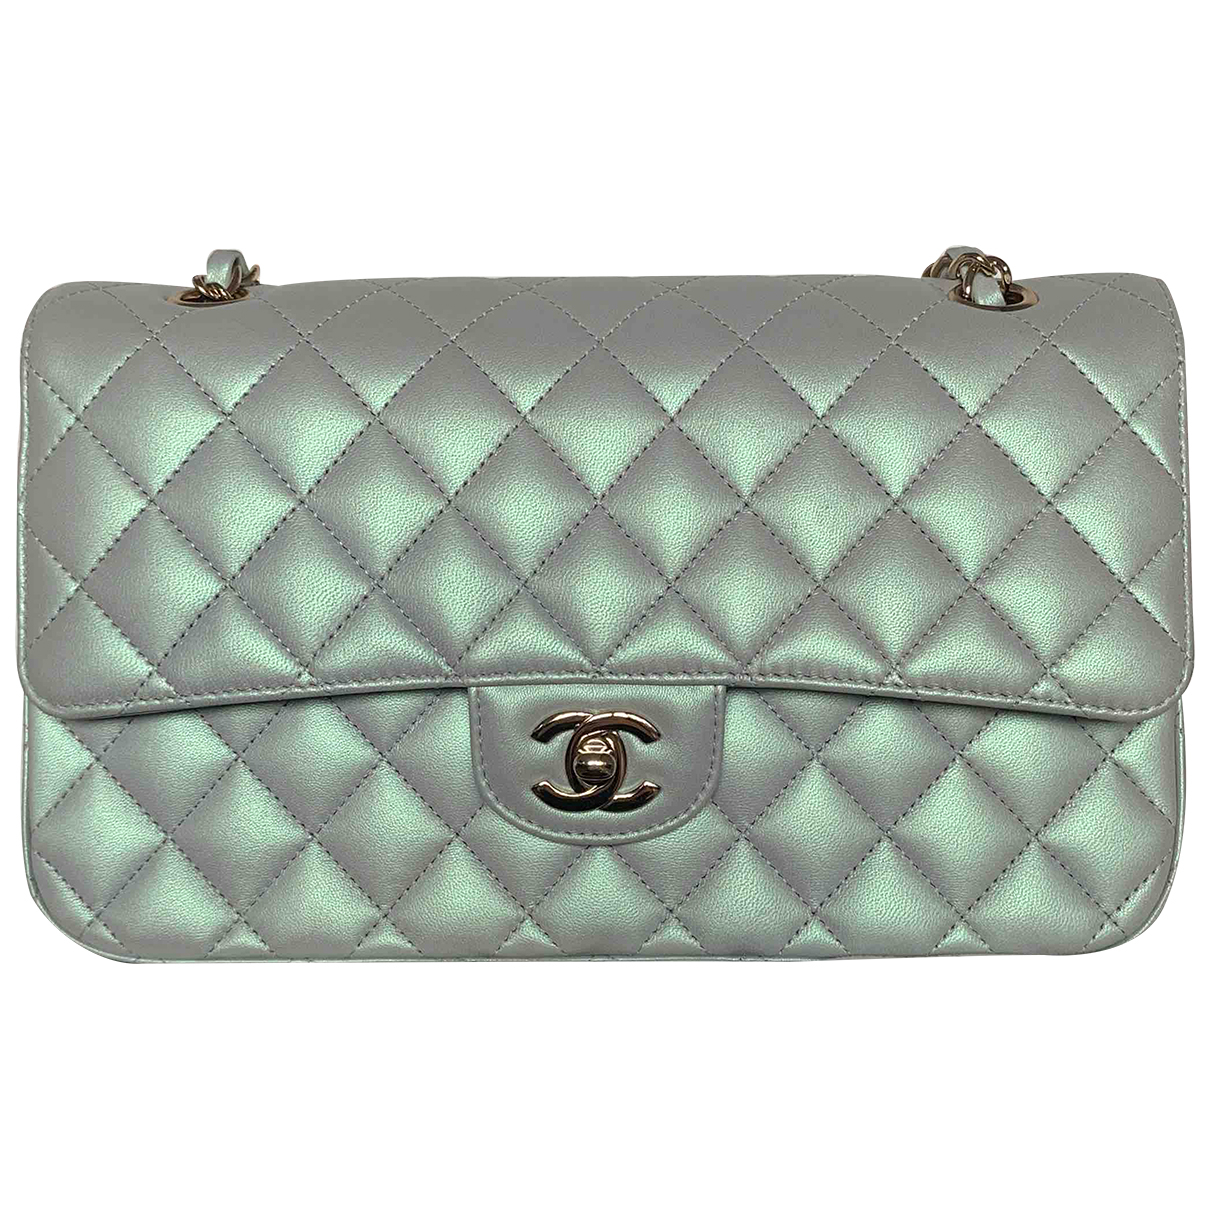 Chanel Timeless/Classique Green Leather handbag for Women N